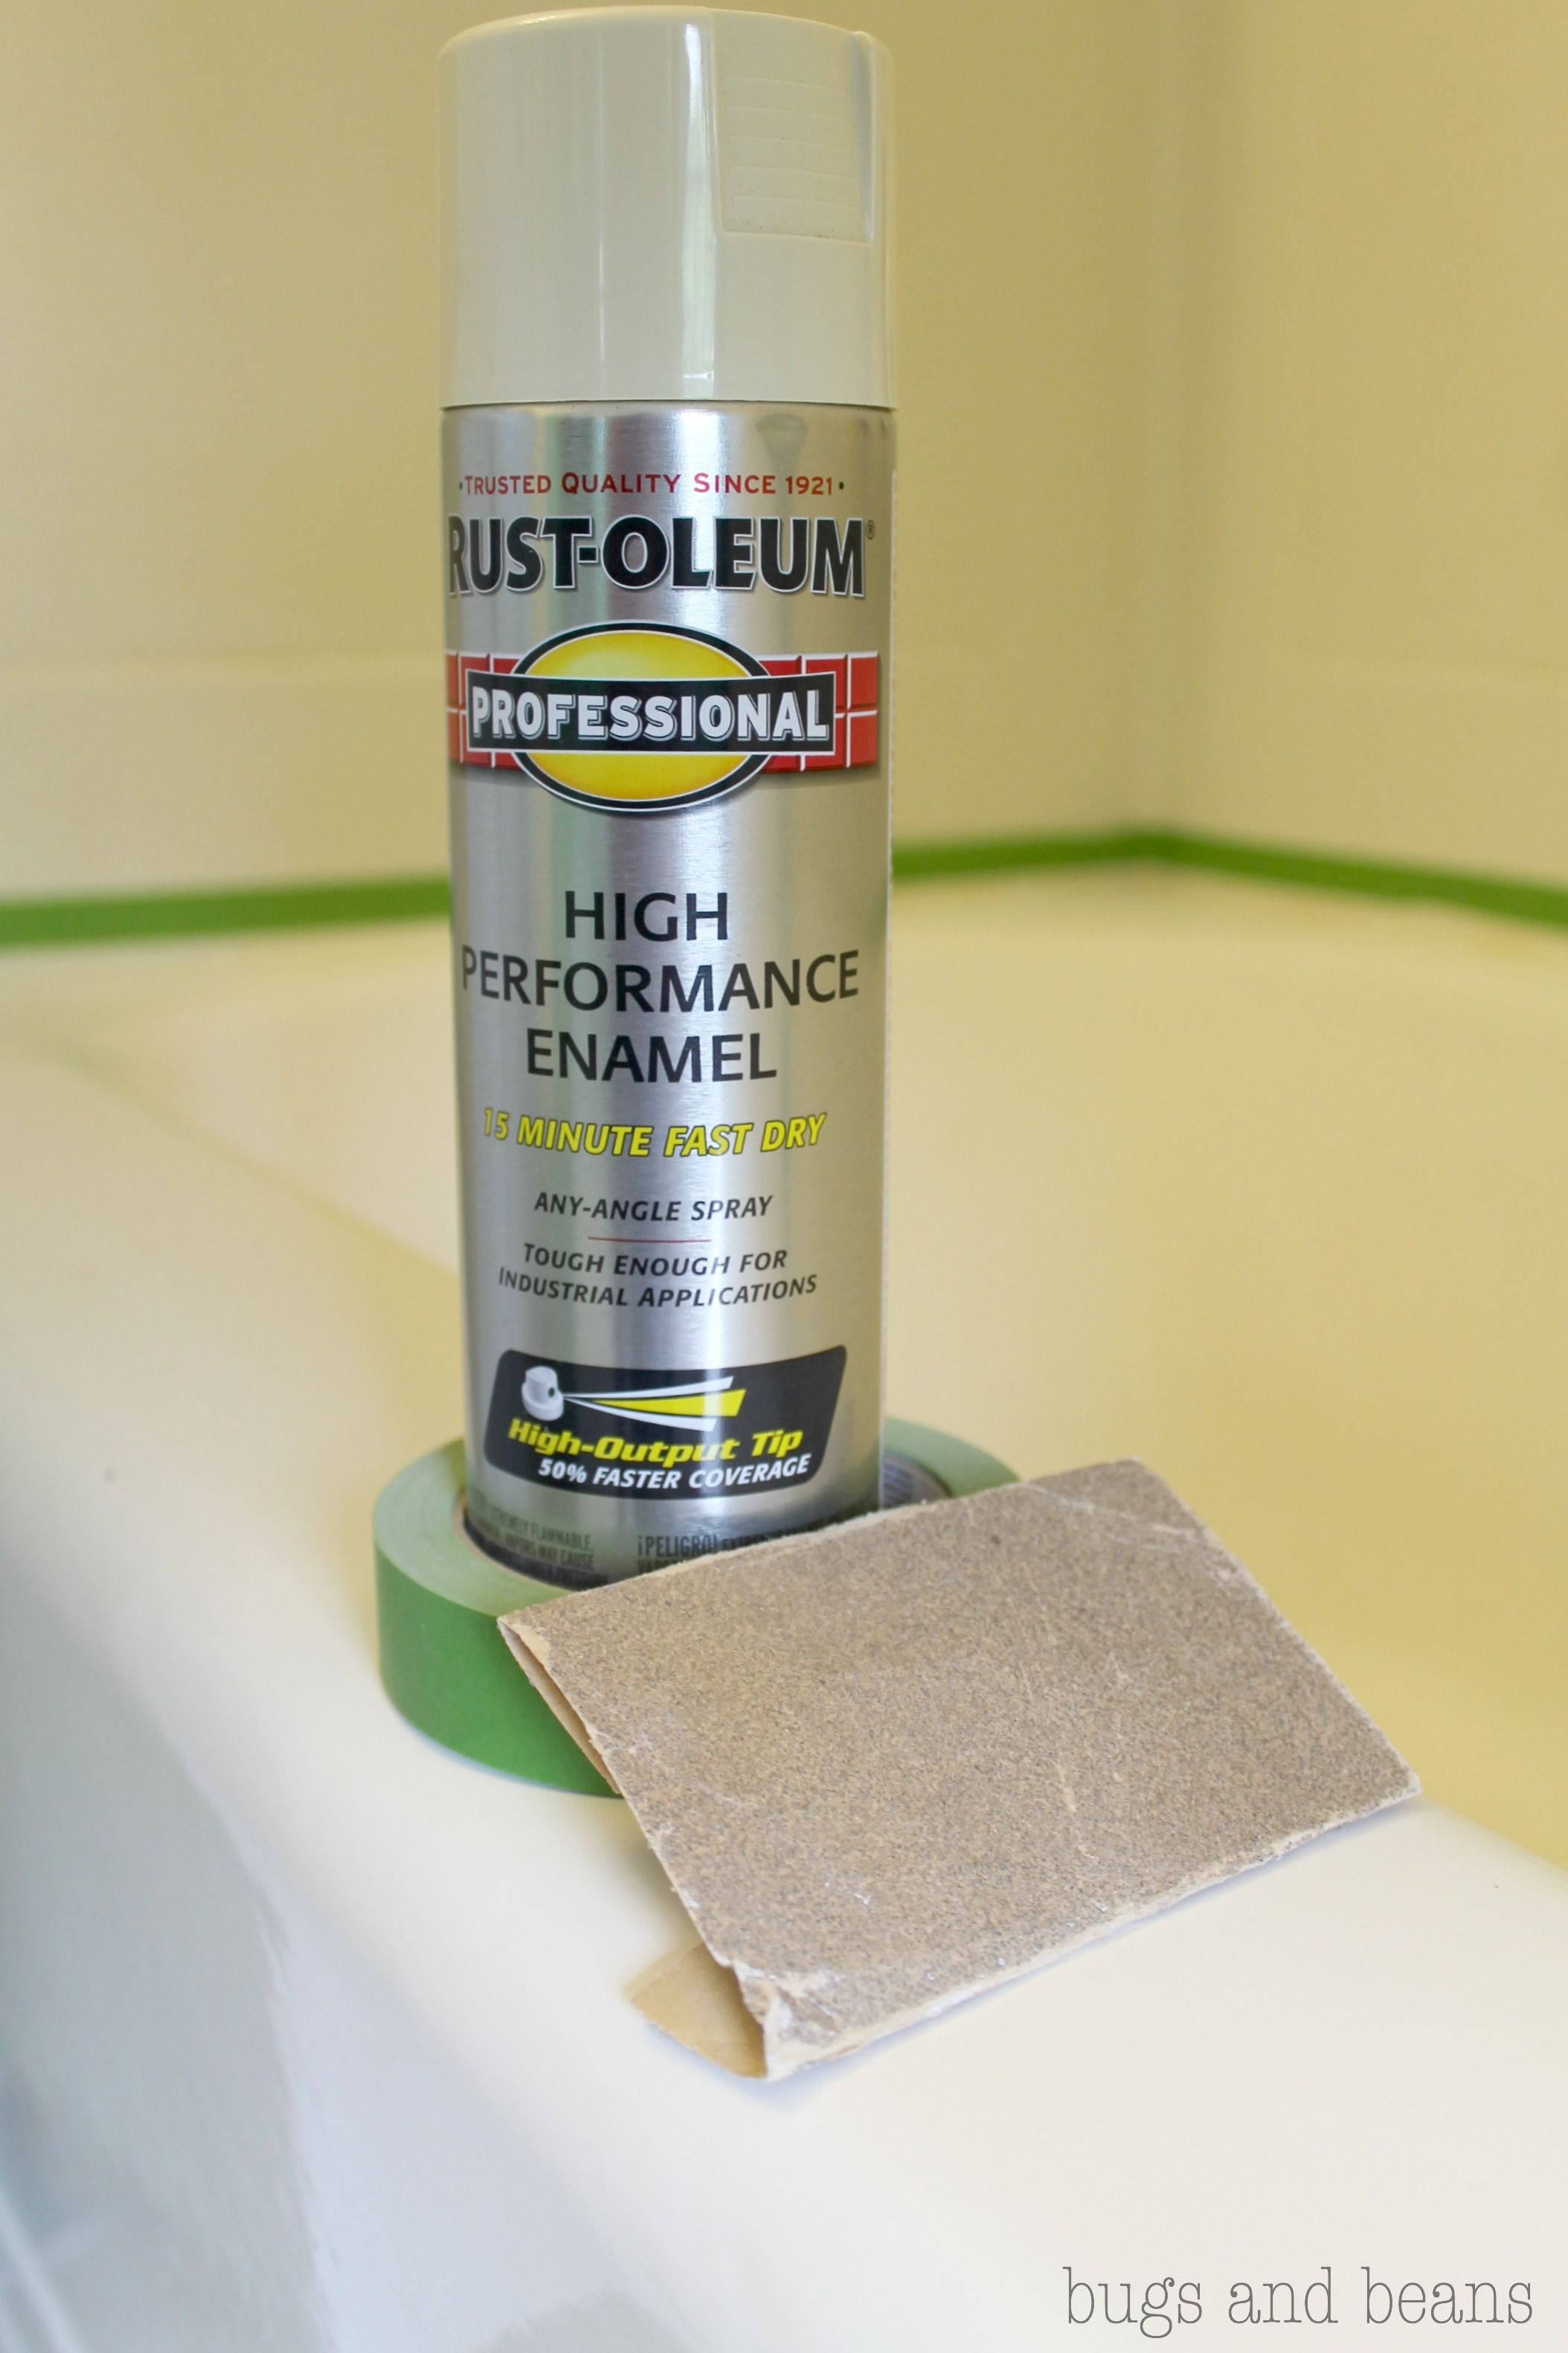 Rust-oleum High Performance Enamel $8 new bath | Renovate ...